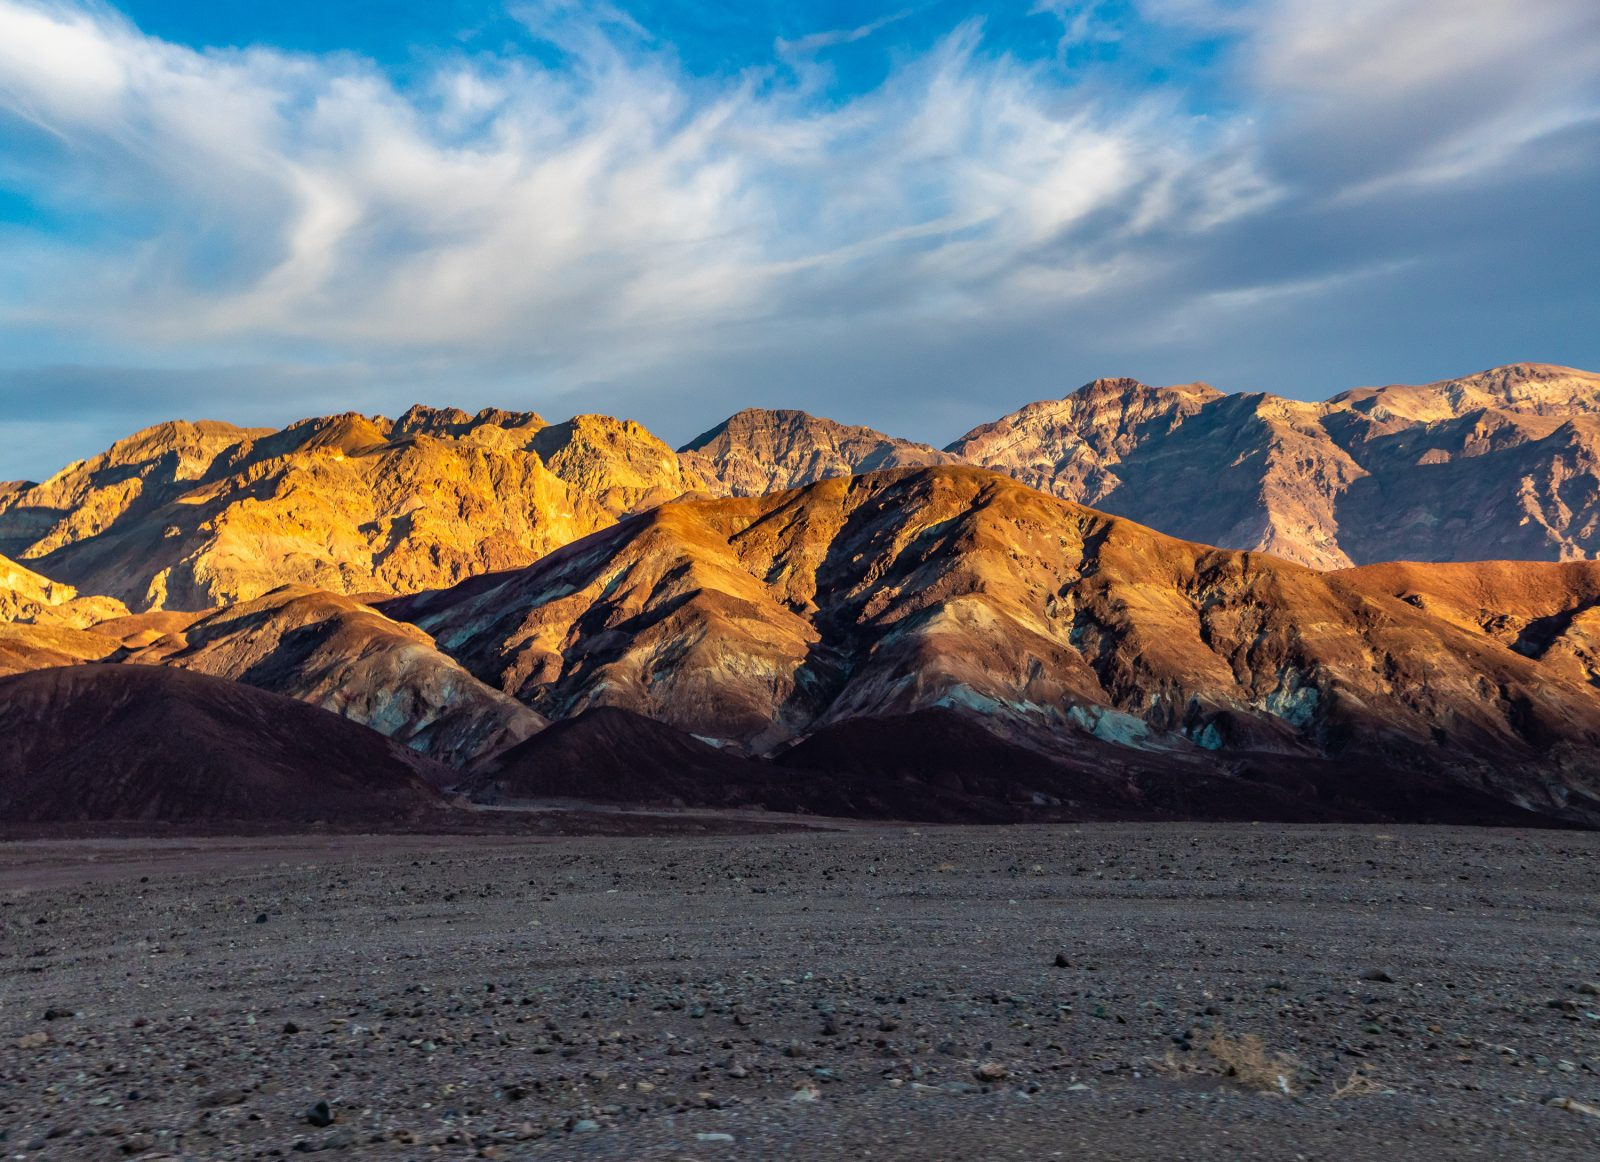 Furnace Creek Vista